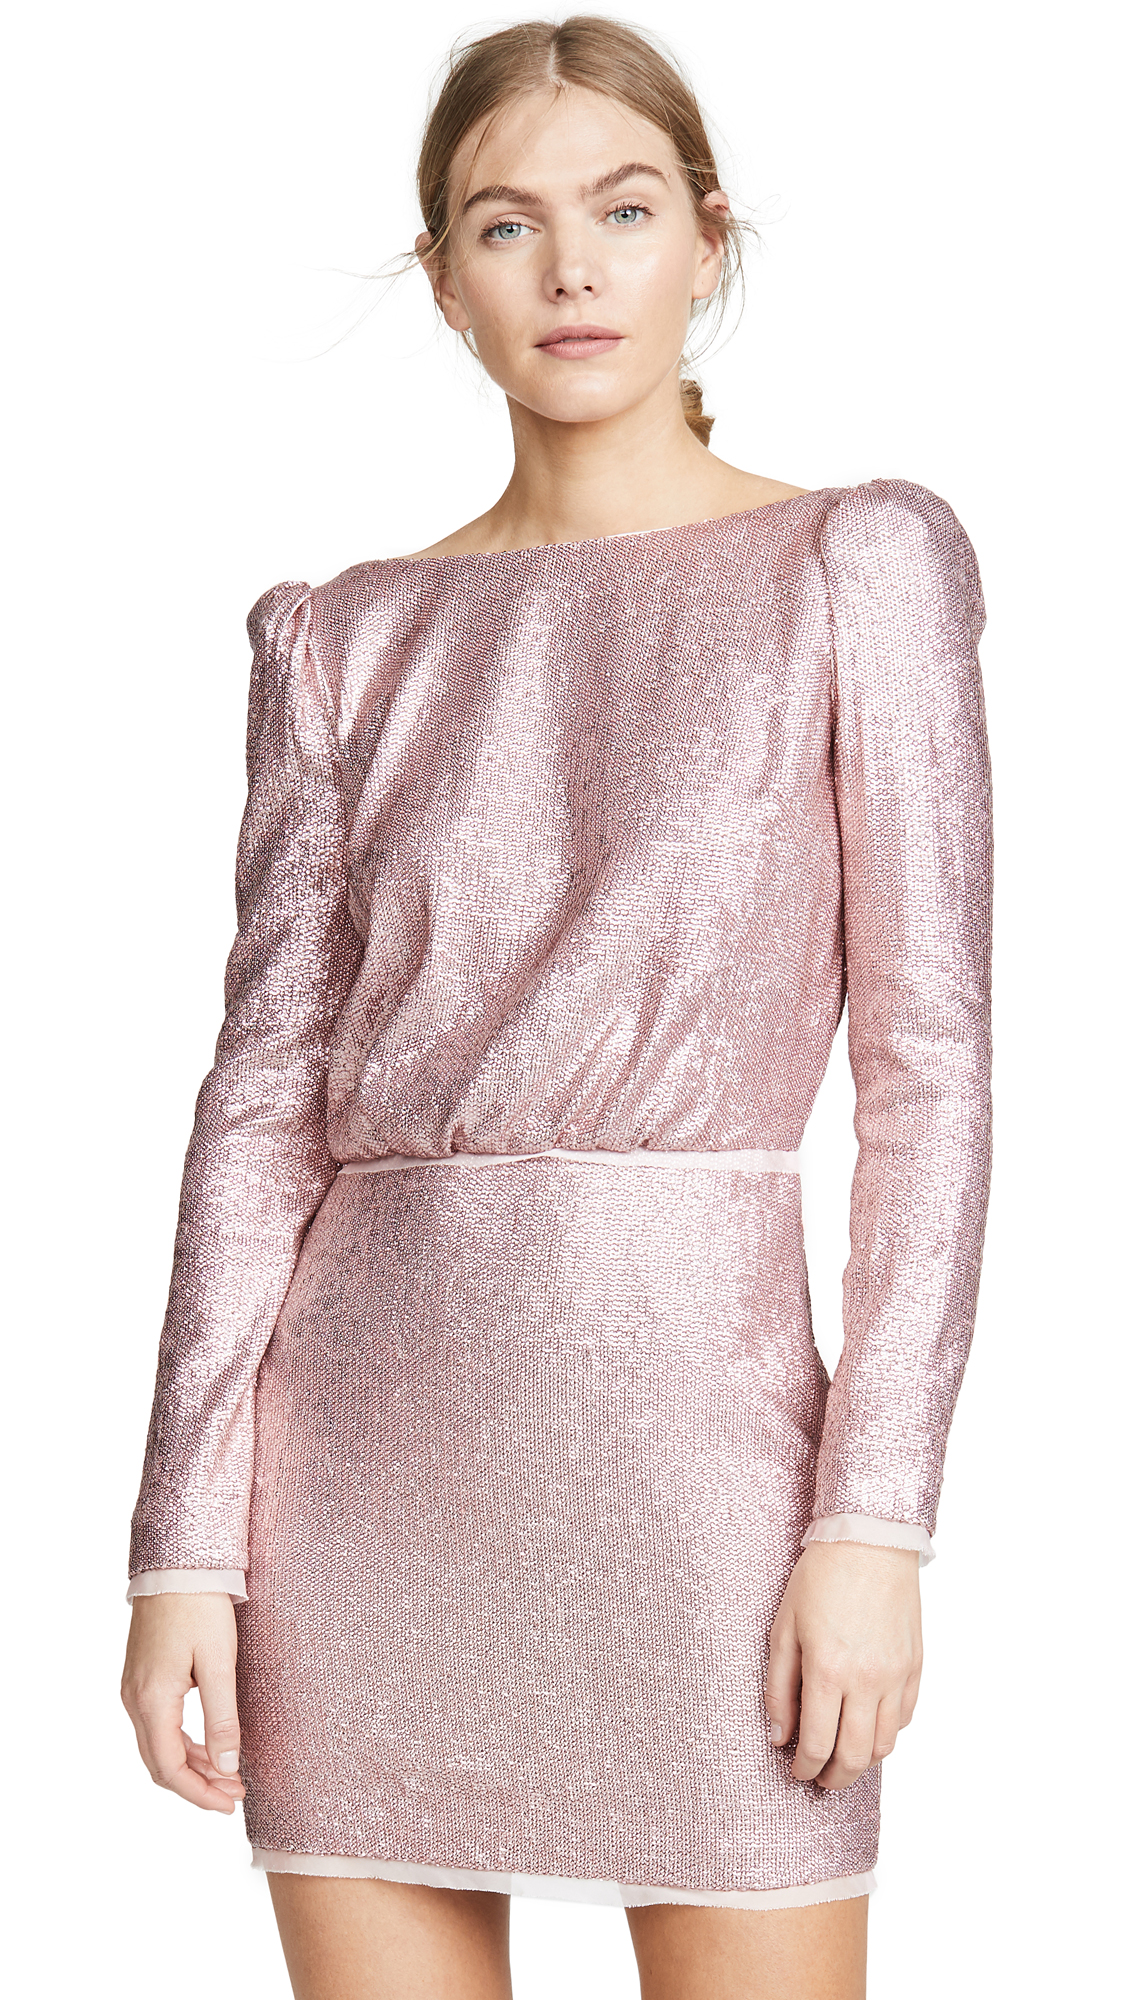 Rachel Zoe Cadence Dress - Light Pink